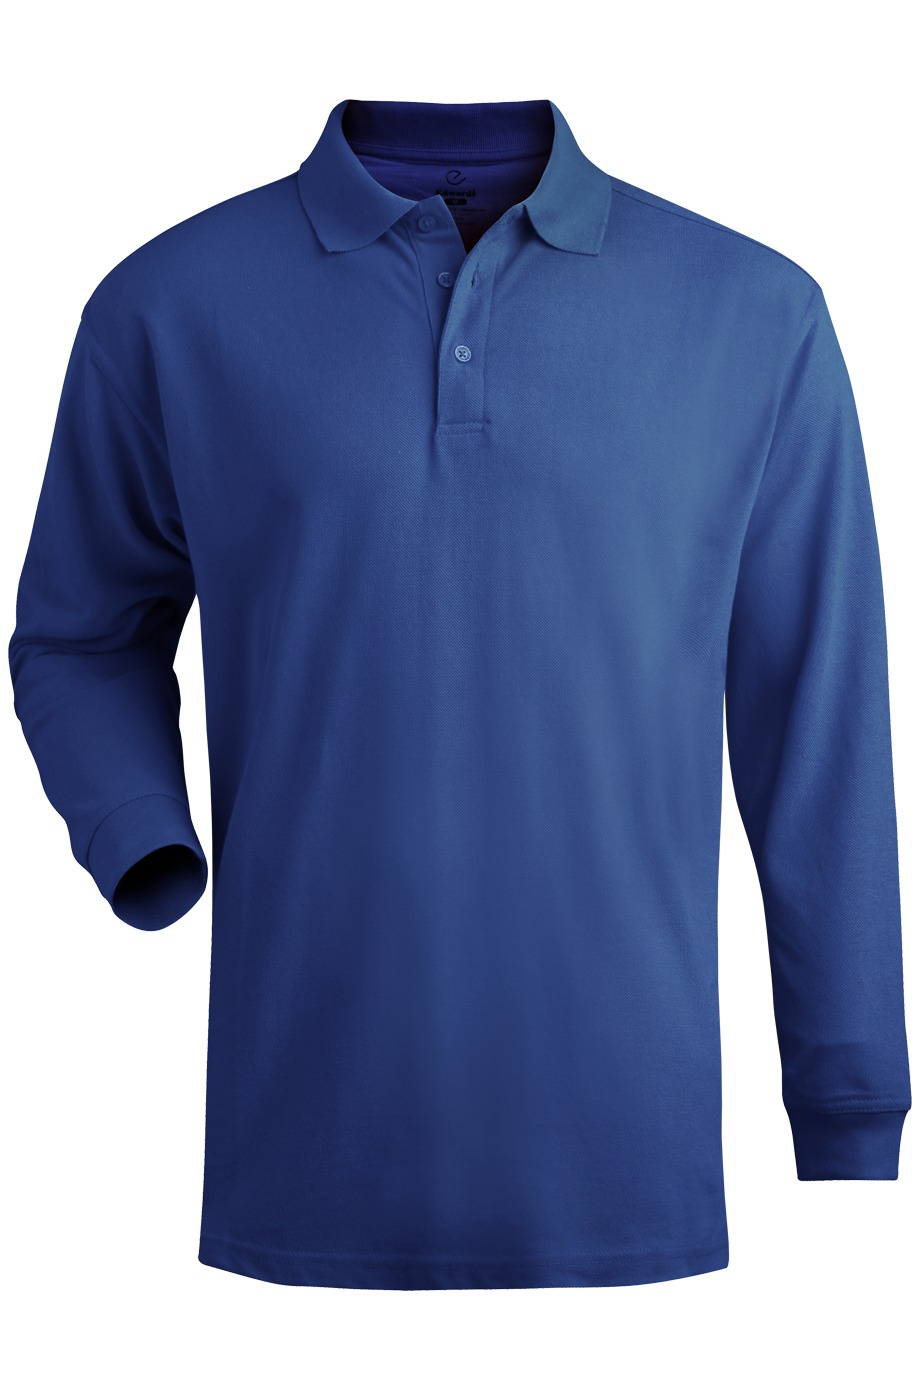 Edwards Garment 1515 - Men's Long Sleeve Pique Polo